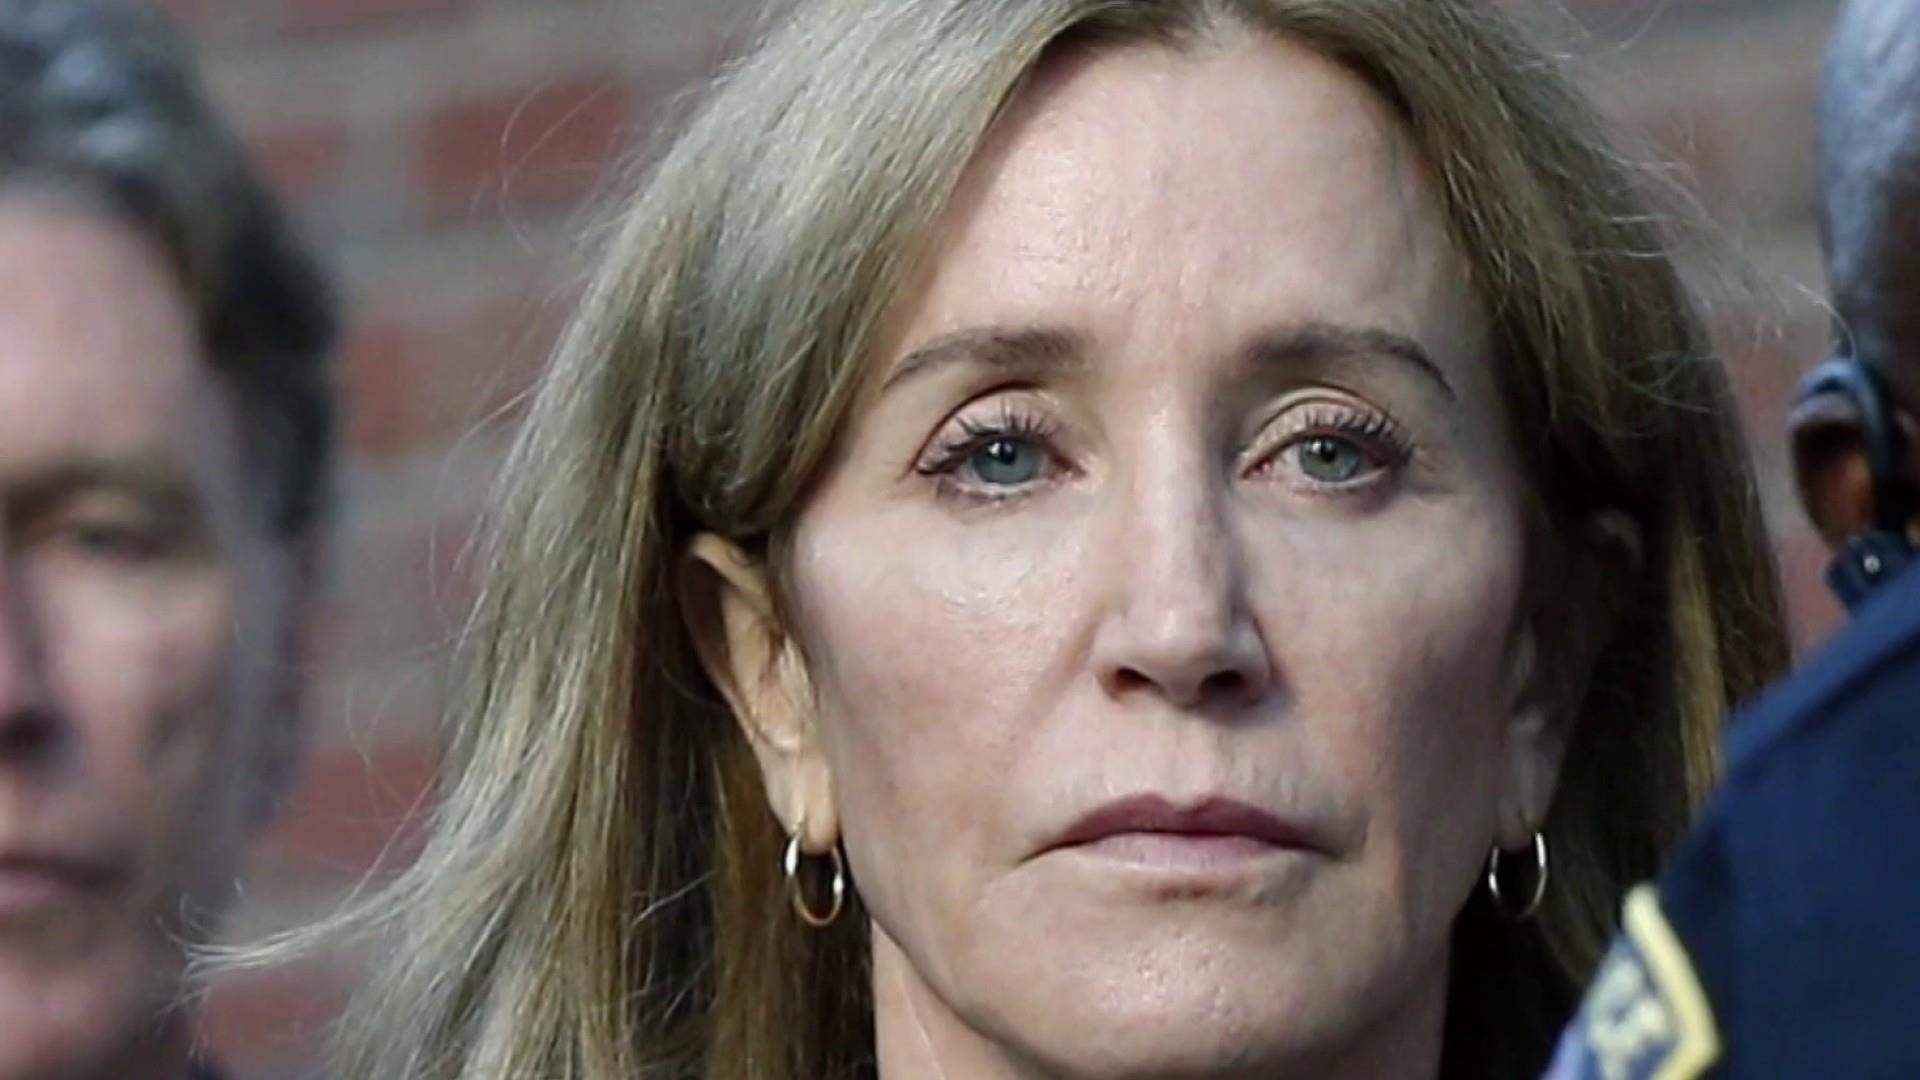 Public backlash over Felicity Huffman's 14-day sentence